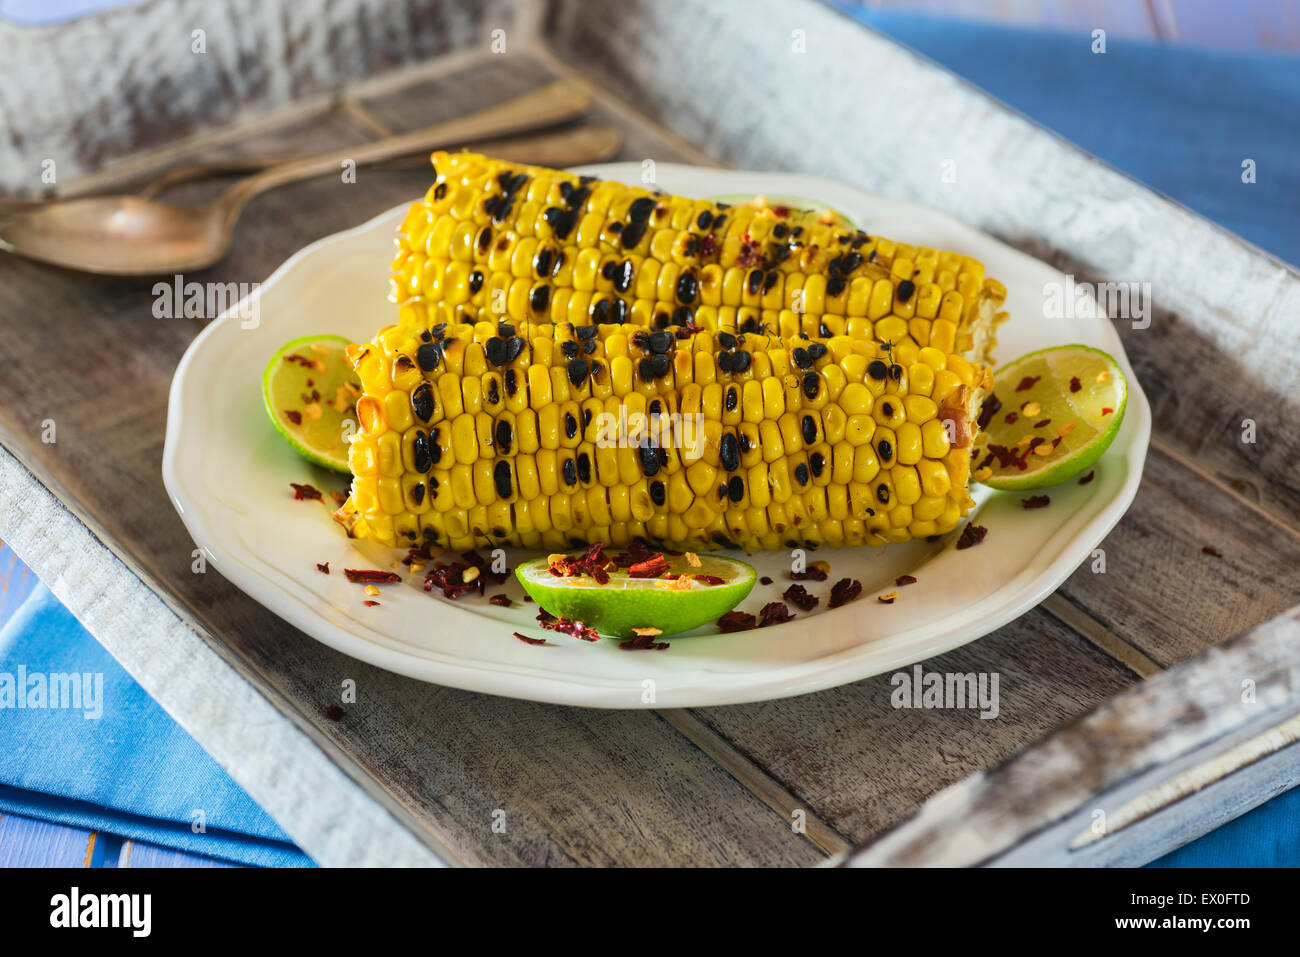 Grilled sweetcorn with lime and chilli flakes - Stock Image